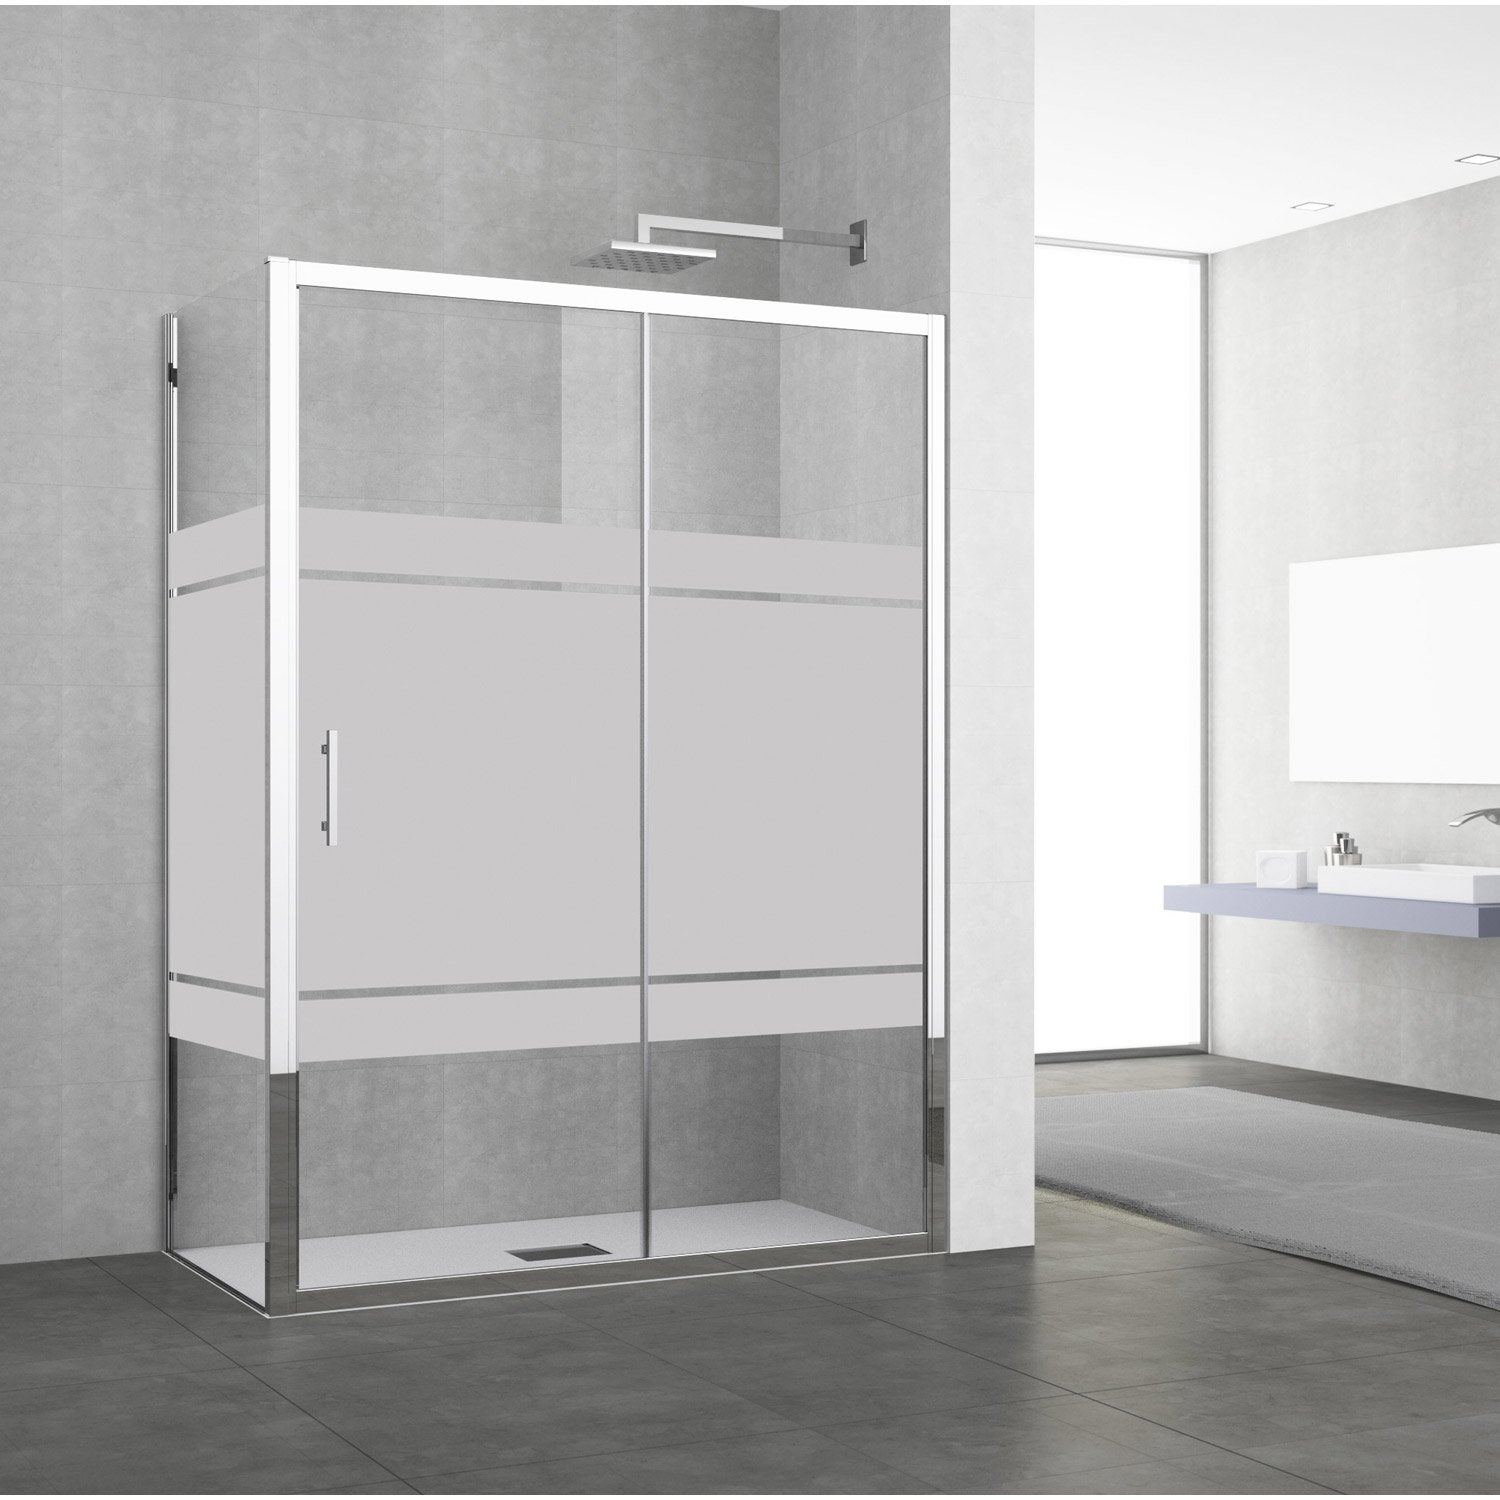 porte de douche coulissante 134 140 cm profil chrom elyt 2 pnx leroy merlin. Black Bedroom Furniture Sets. Home Design Ideas